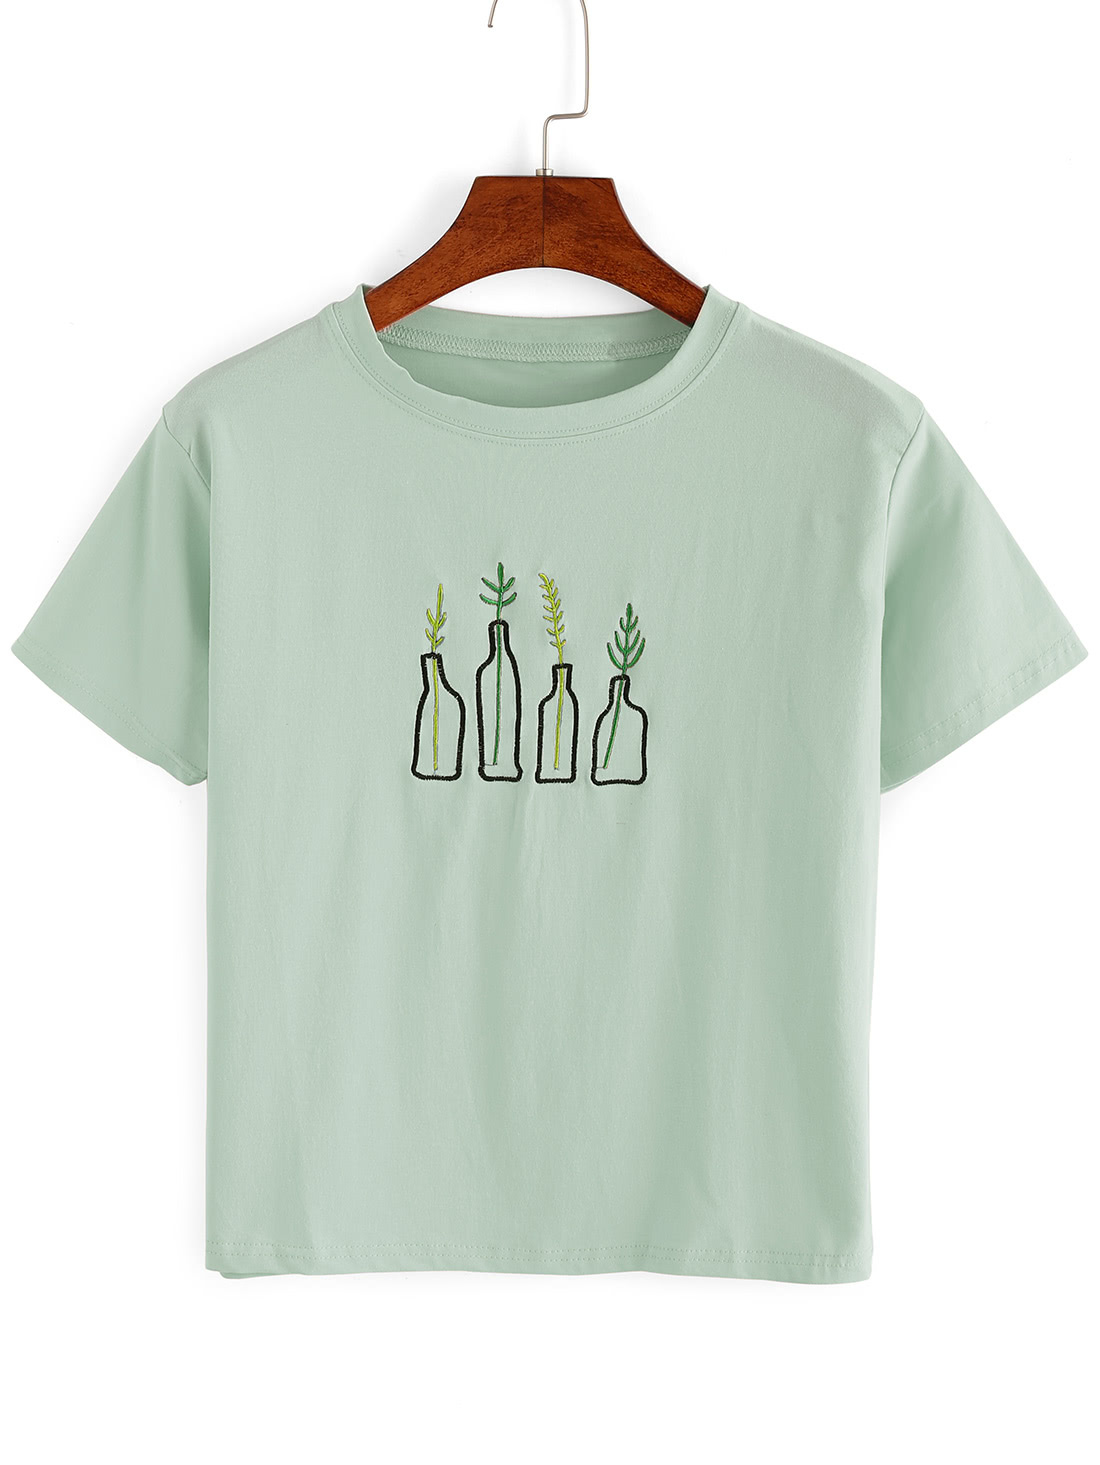 Green Plant Embroidered TShirt